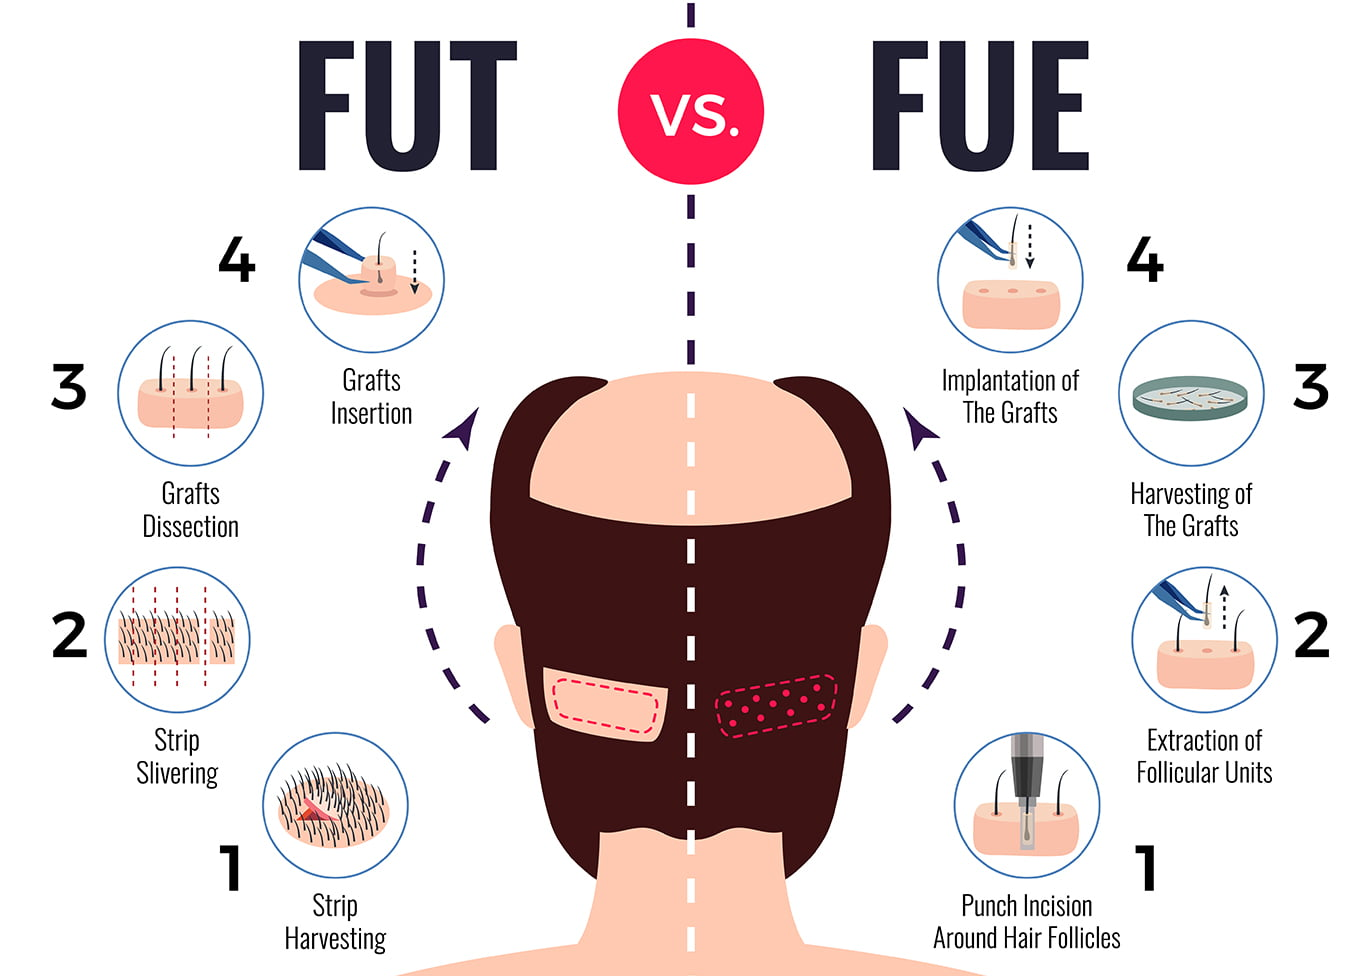 FUE vs FUT Hair Transplant: The Pros and Cons of each